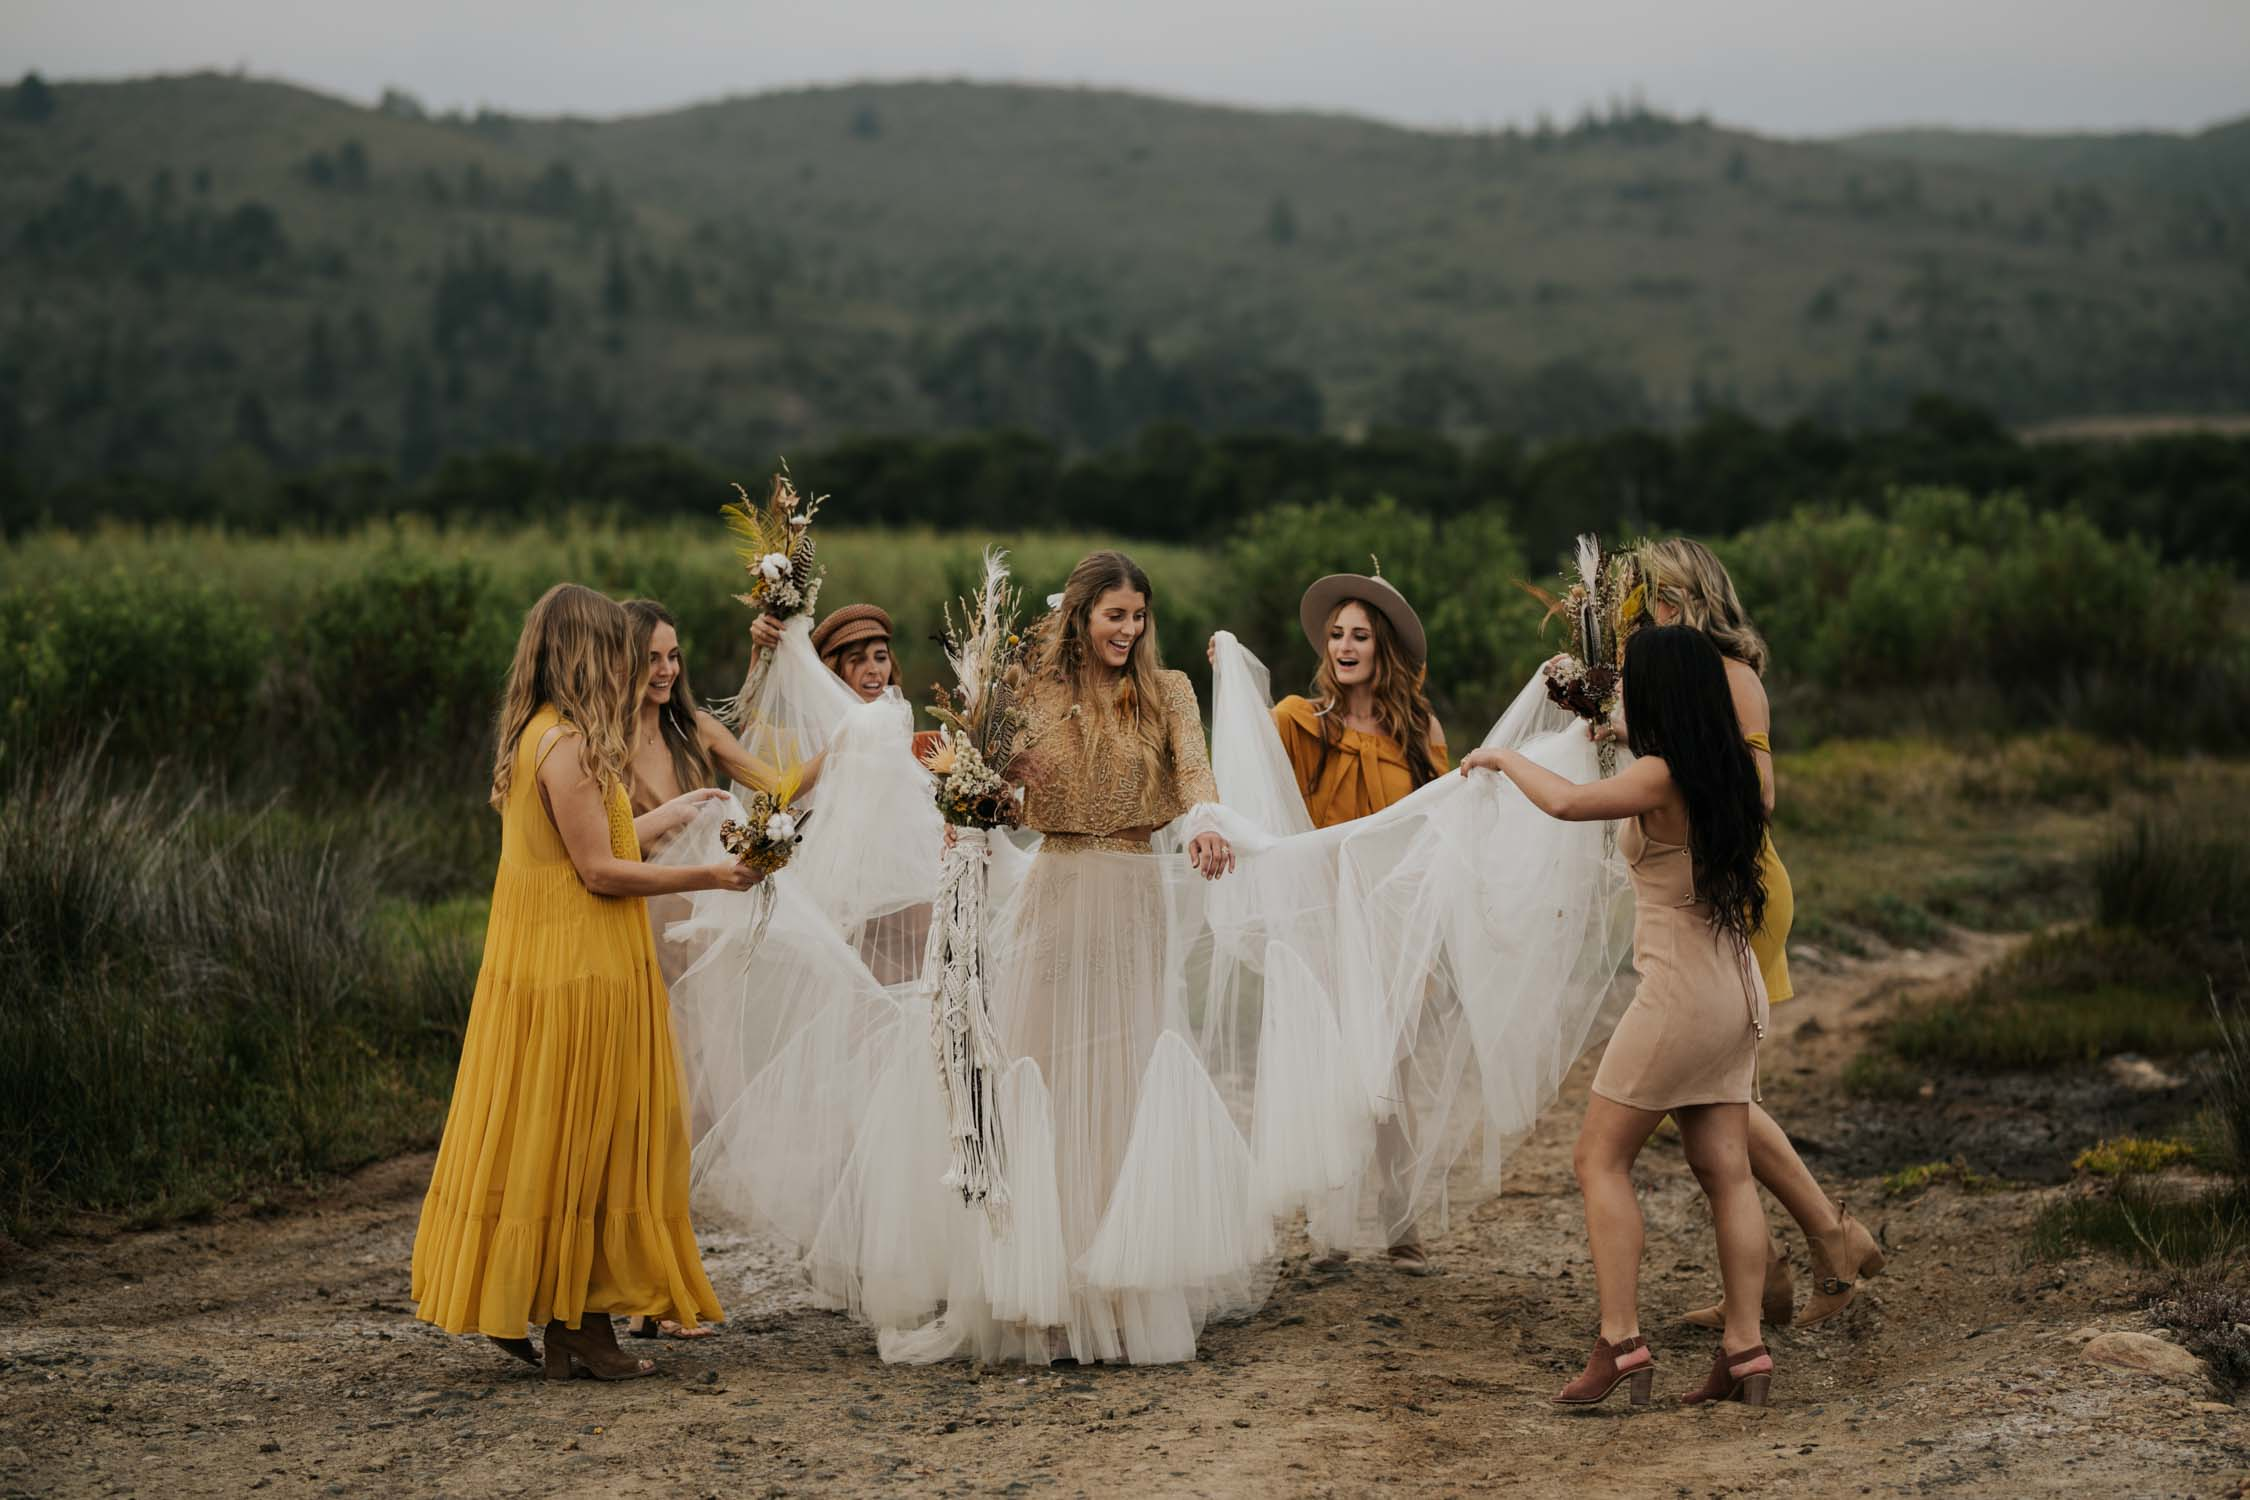 The ultimate boho gypsy bride tribe wearing gypsy sunshine and rust coloured dresses and hats and dance wildly